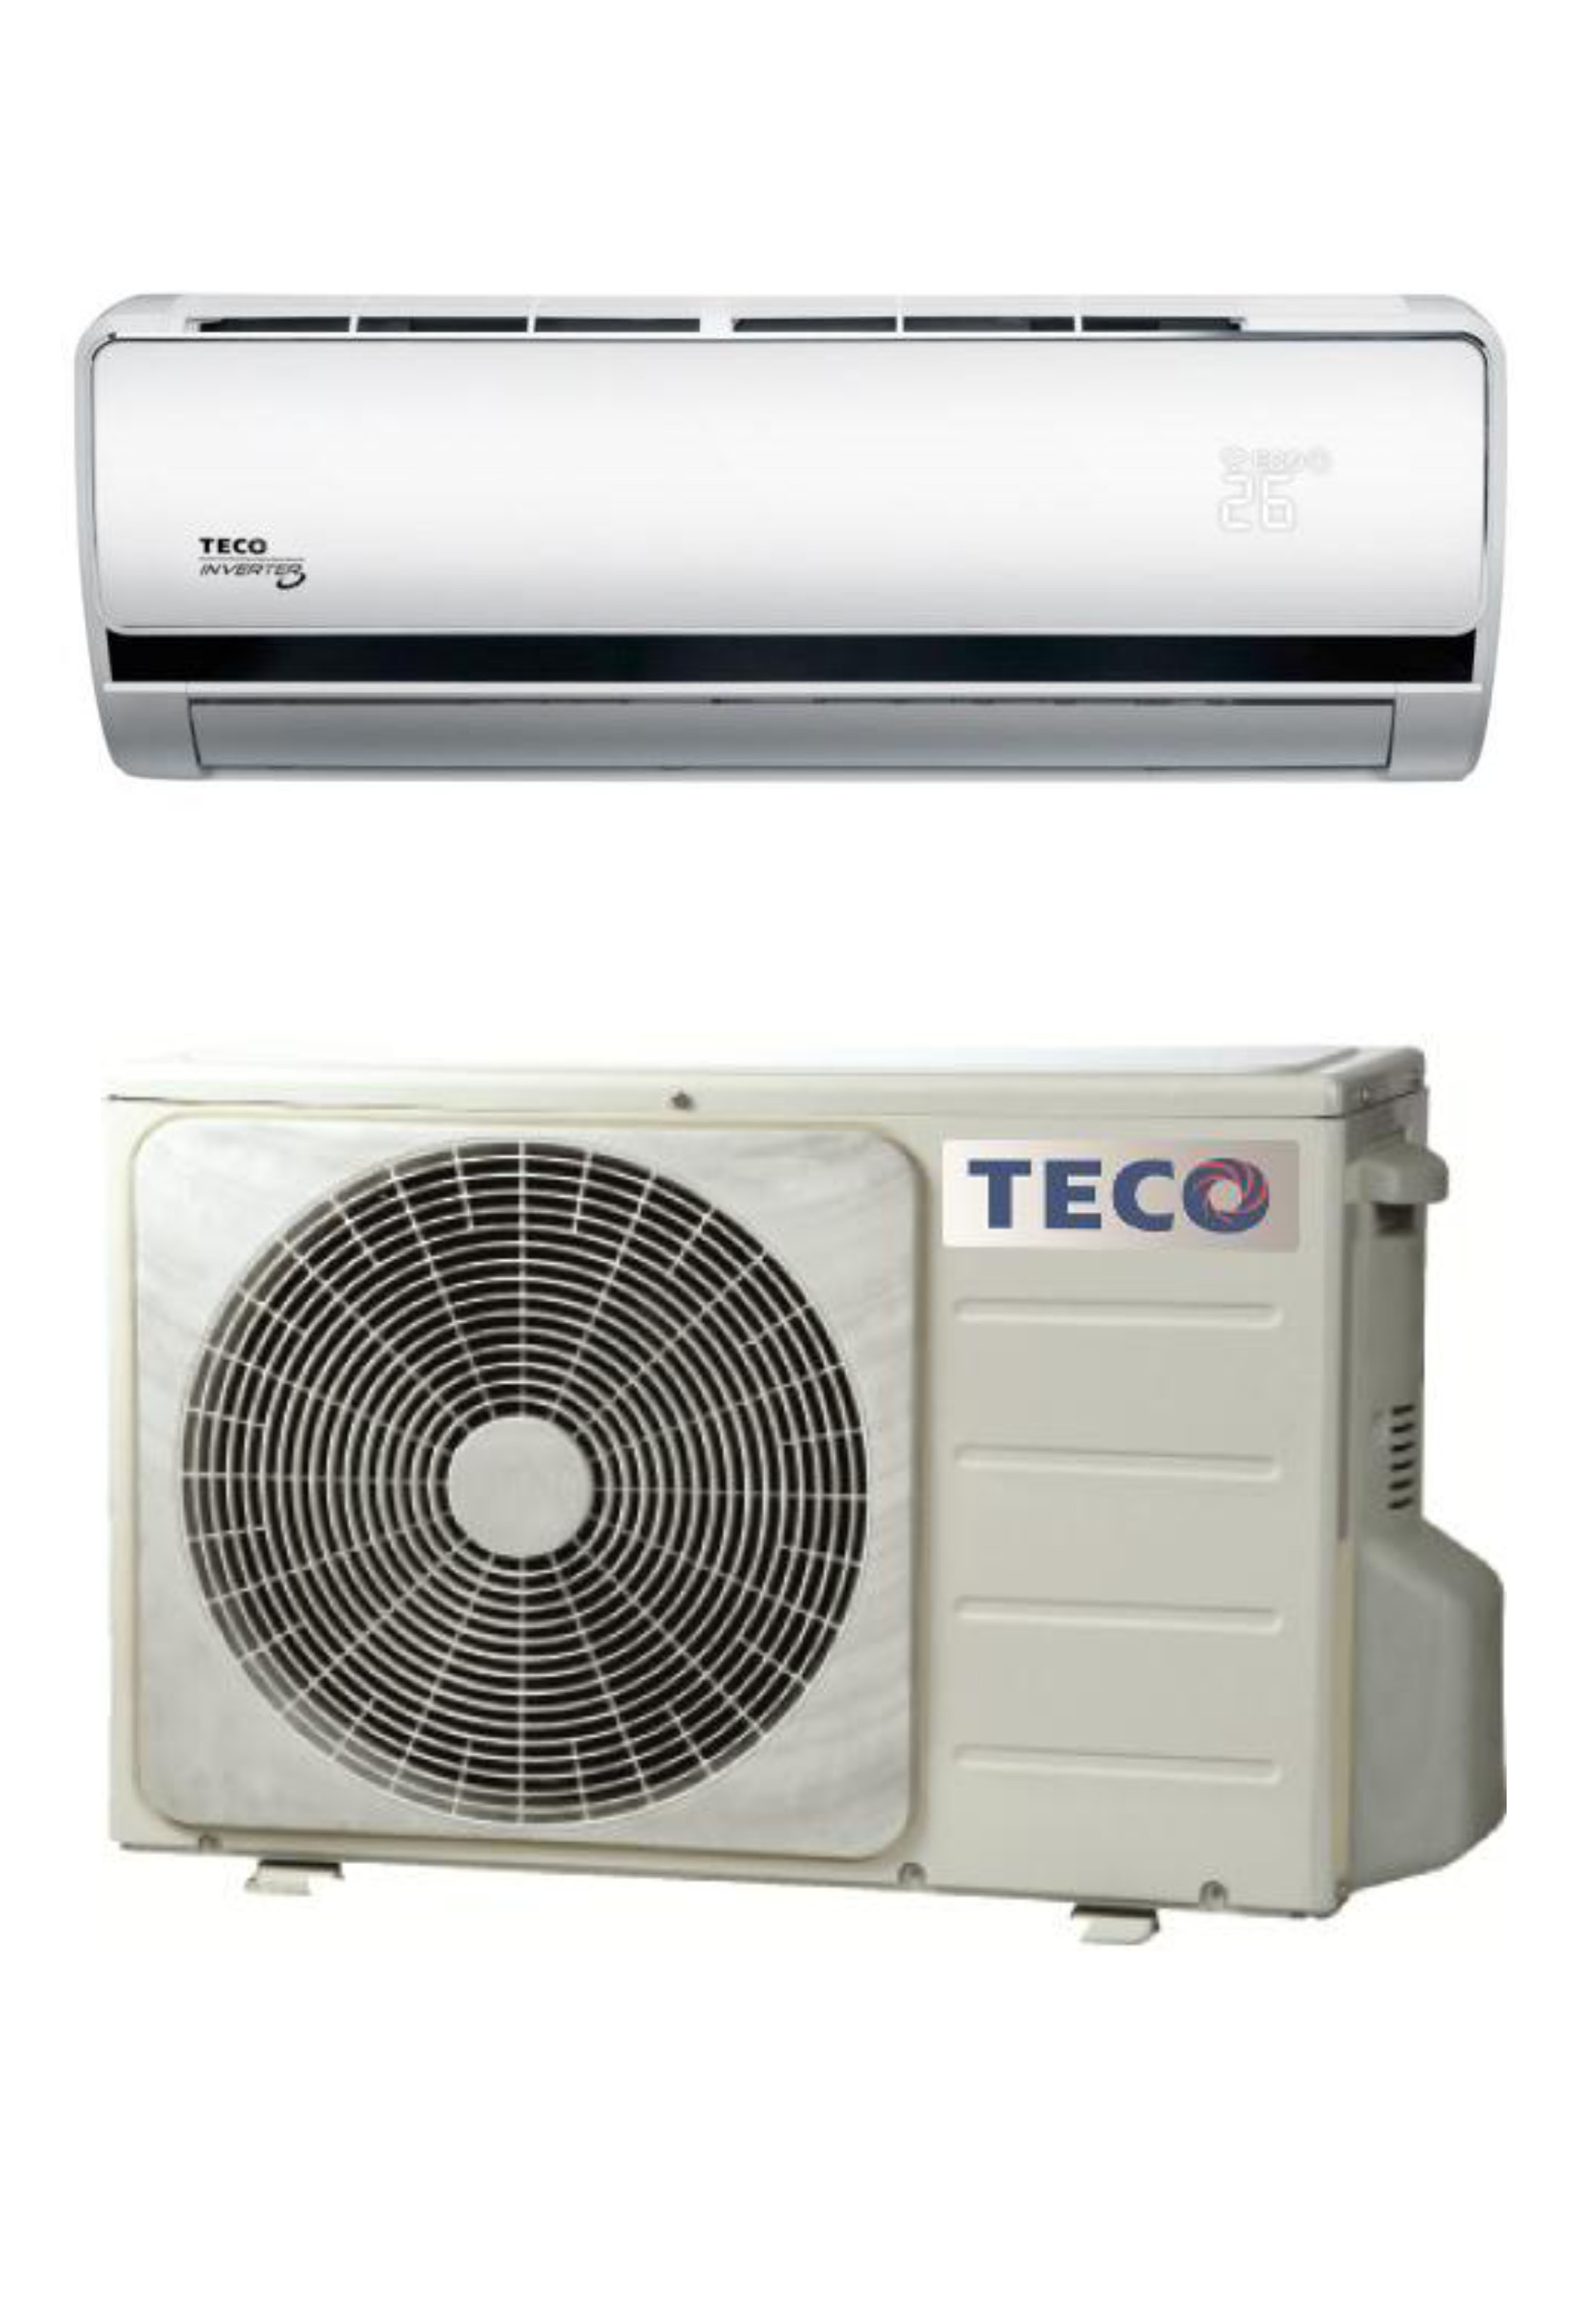 Taiwan Excellence Official Series Parallel Circuits Refrigeration Air Conditioning Dvd 5 Smart Networked Inverter Conditioner